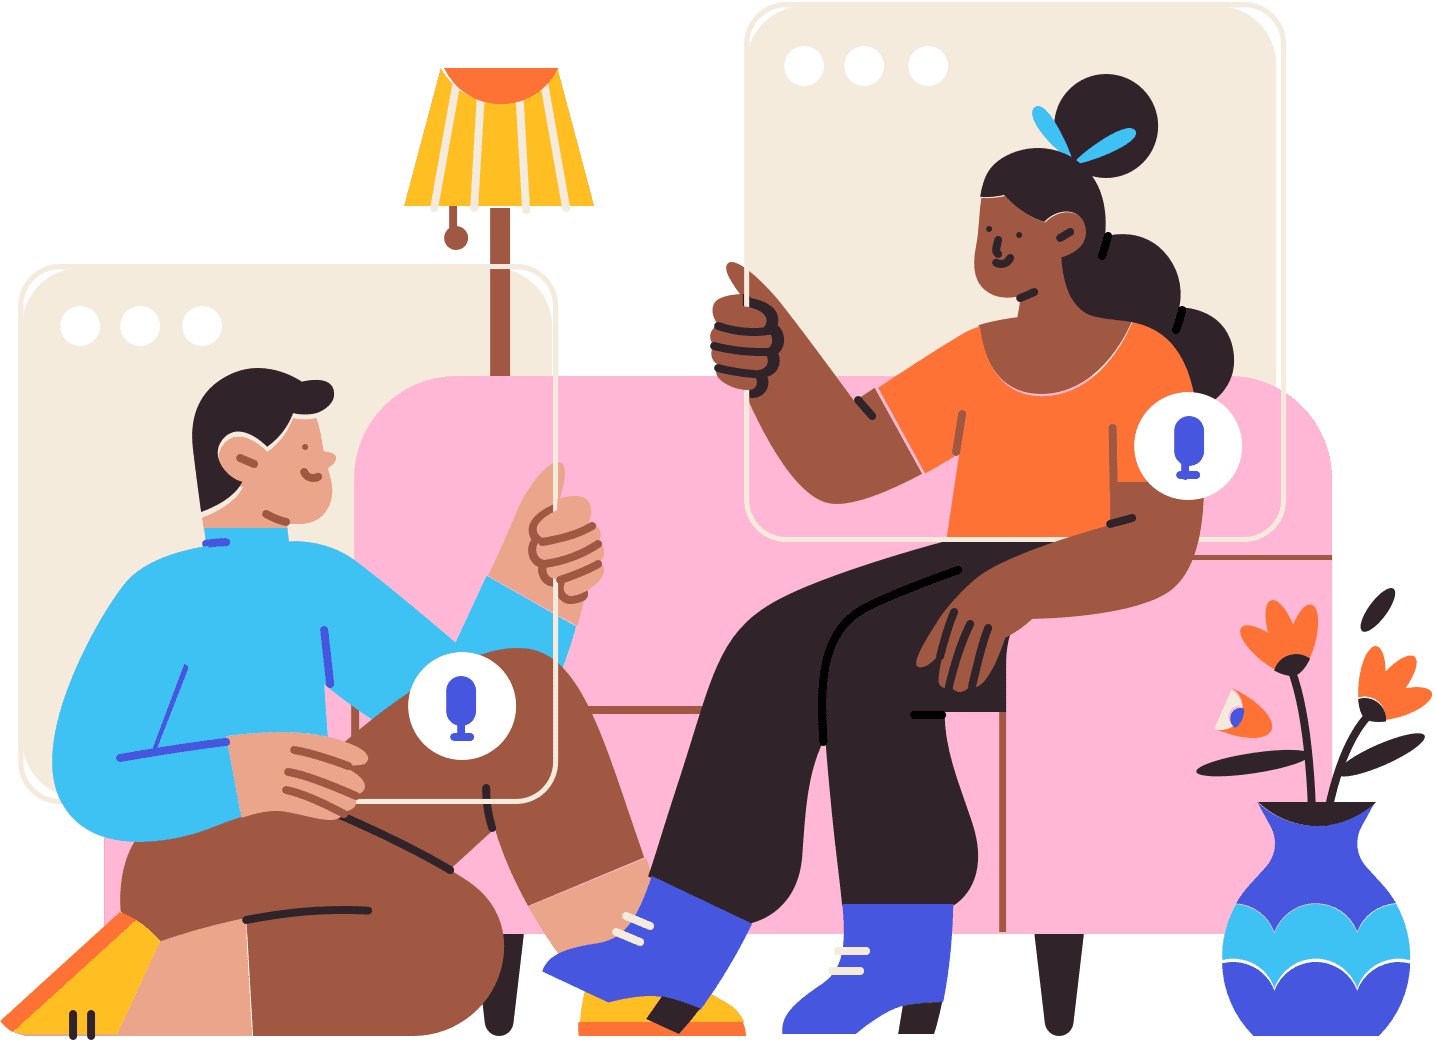 Illustration of two people sitting on and by a couch holding separate imaginary video call windows in front of themselves.